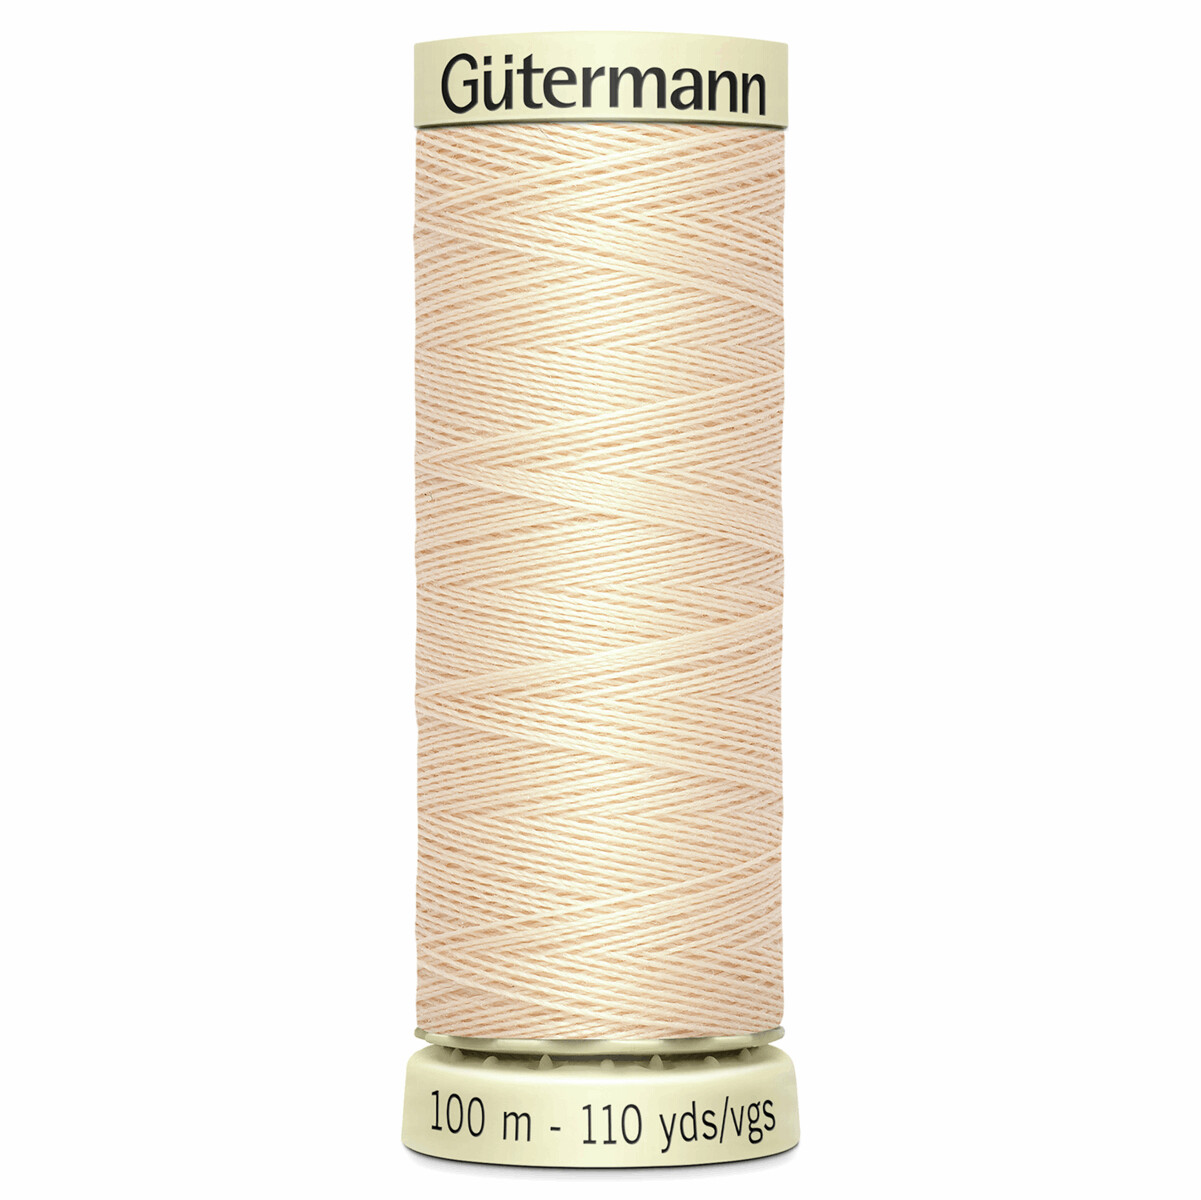 Gutermann Sew-All thread  05